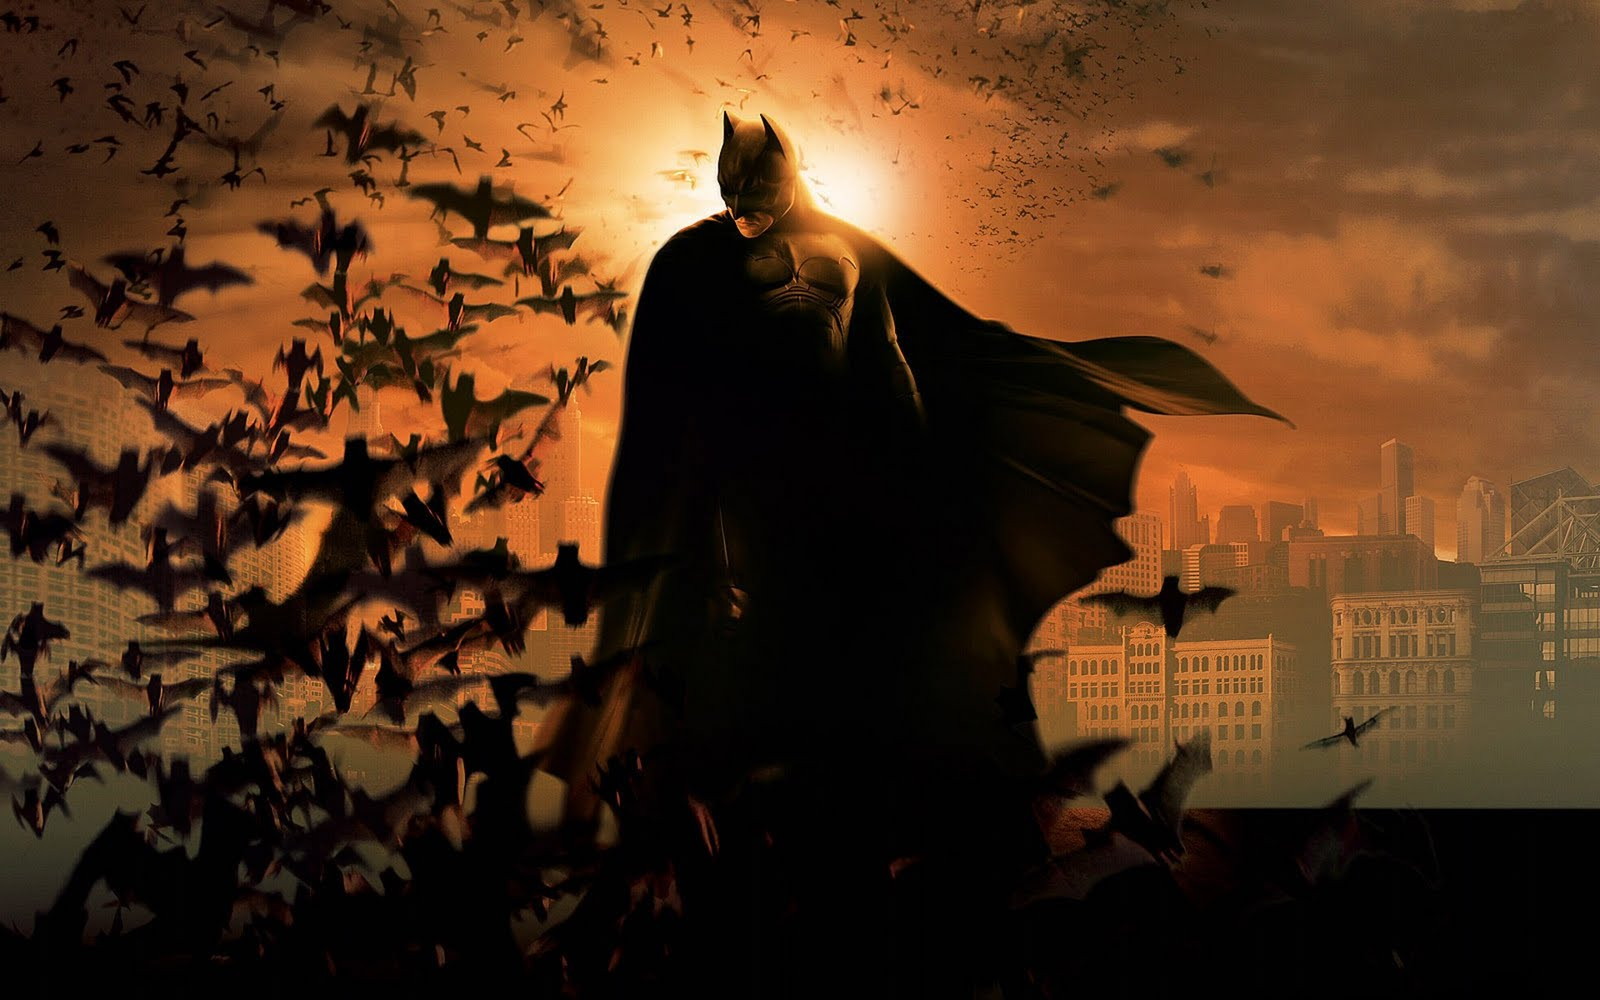 http://4.bp.blogspot.com/-uFThQlFesPE/TjTmnPki-bI/AAAAAAAAAQ4/pCIPAClSEeU/s1600/5348-batman-3-the-dark-knight-rises-wallpaper.jpg